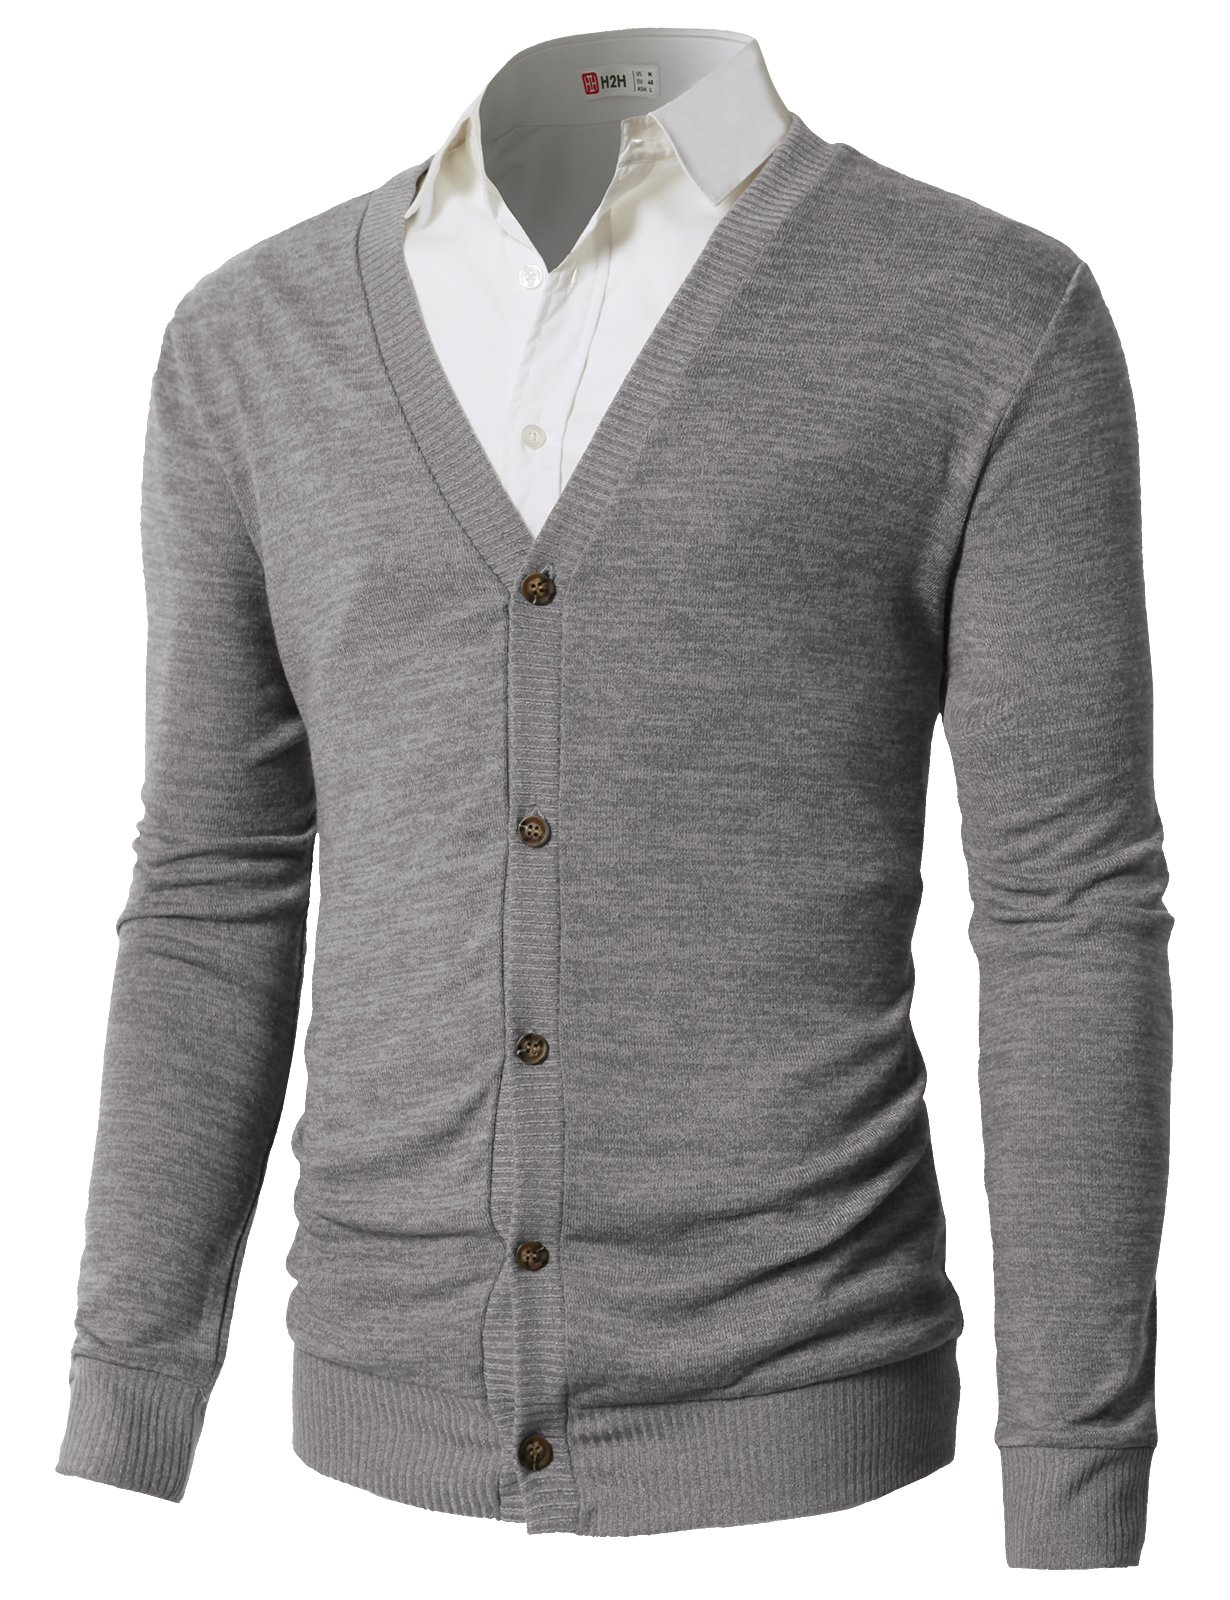 H2H Mens Casual Slim Fit Knitted Basic Designed V-Neck Long Sleeve Cardigan Gray US M/Asia L (CMOCAL019)